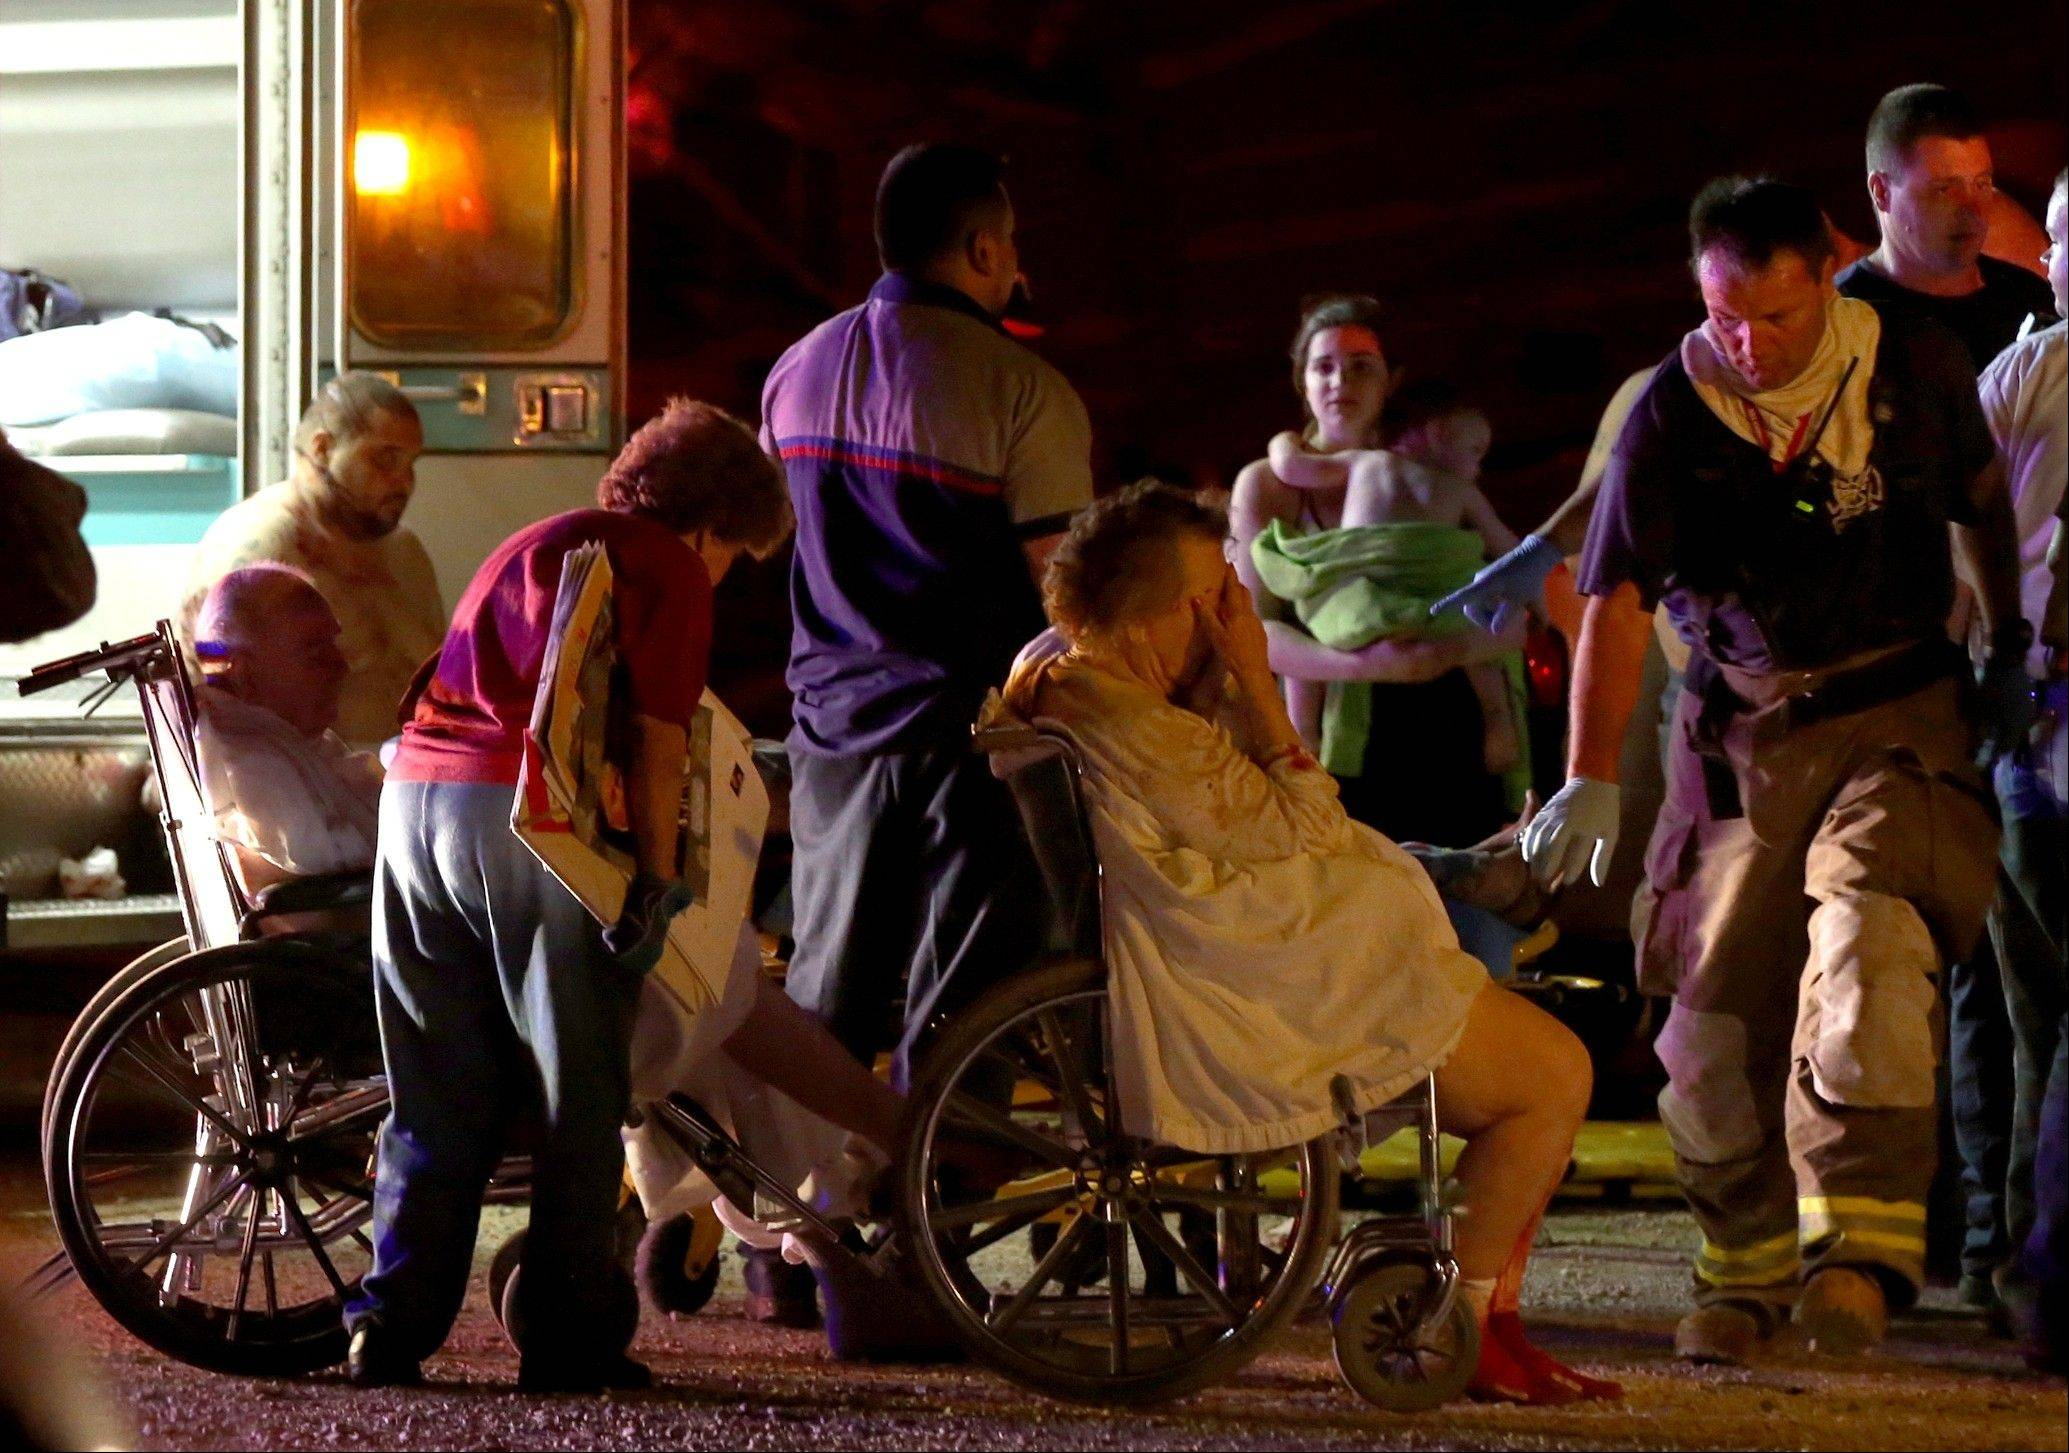 Emergency workers evacuate elderly from a damaged nursing home after the explosion in West, Texas.